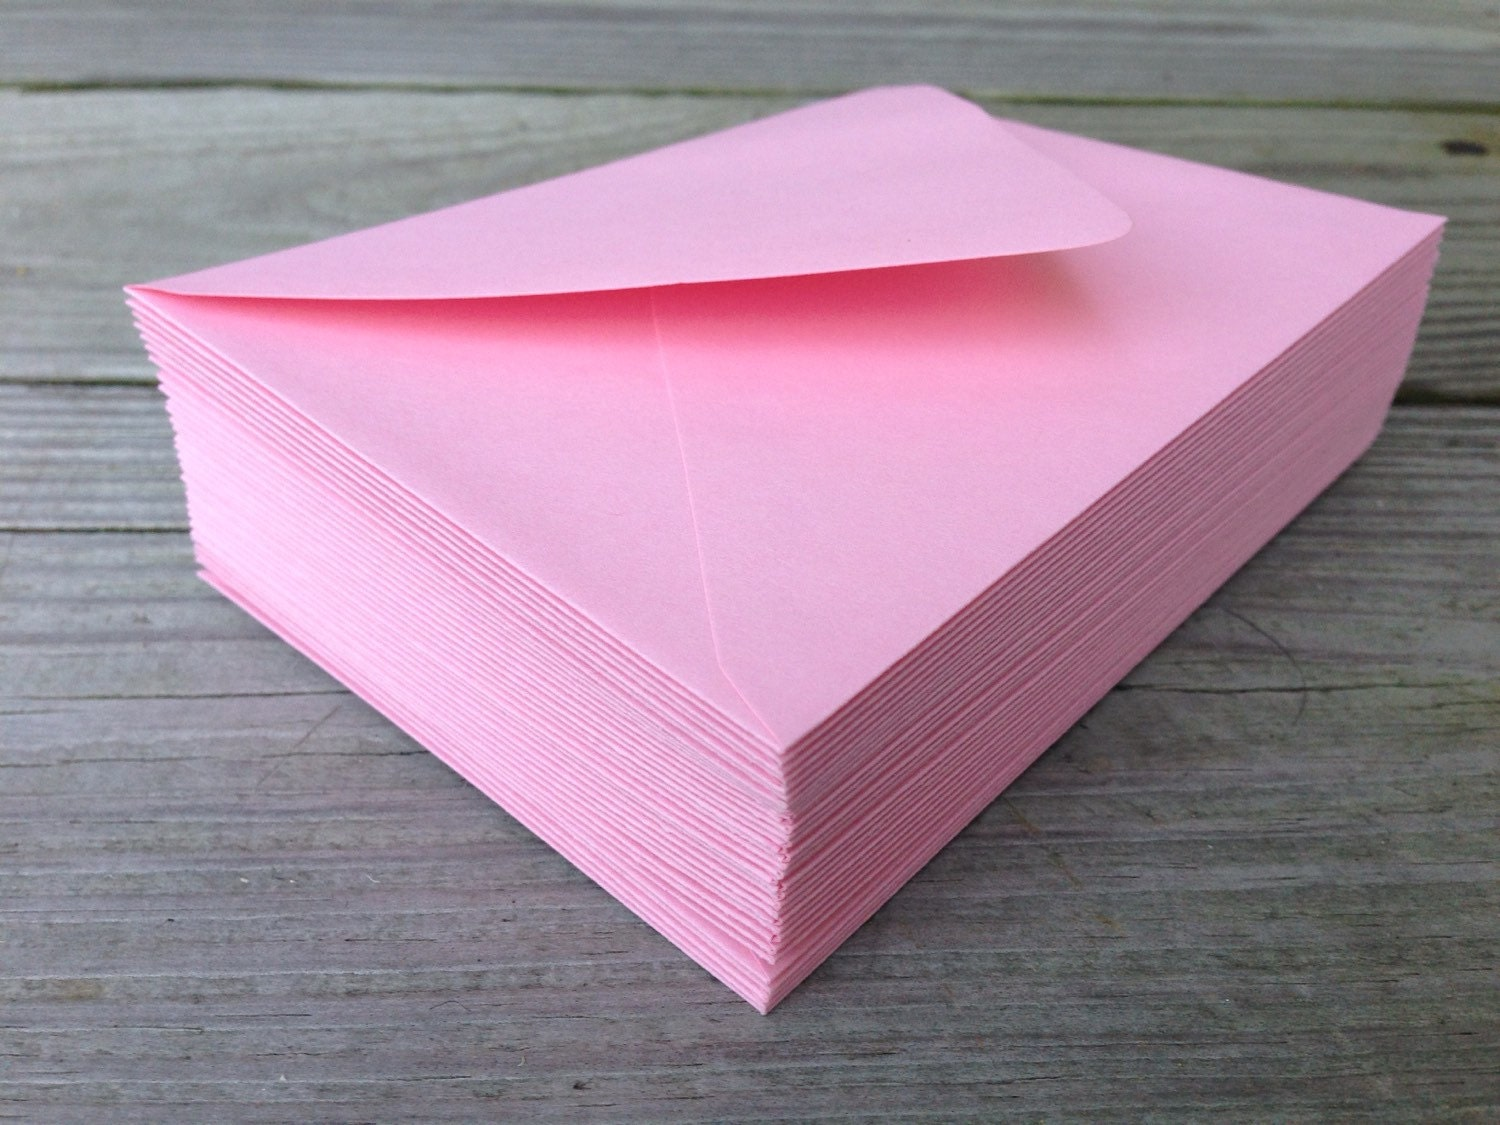 50 pink envelopes a7 5x7 invitation or a1 4bar rsvp pointed flap 50 pink envelopes a7 5x7 invitation or a1 4bar rsvp pointed flap envelopes baby pink blossom paper source envelope stopboris Image collections